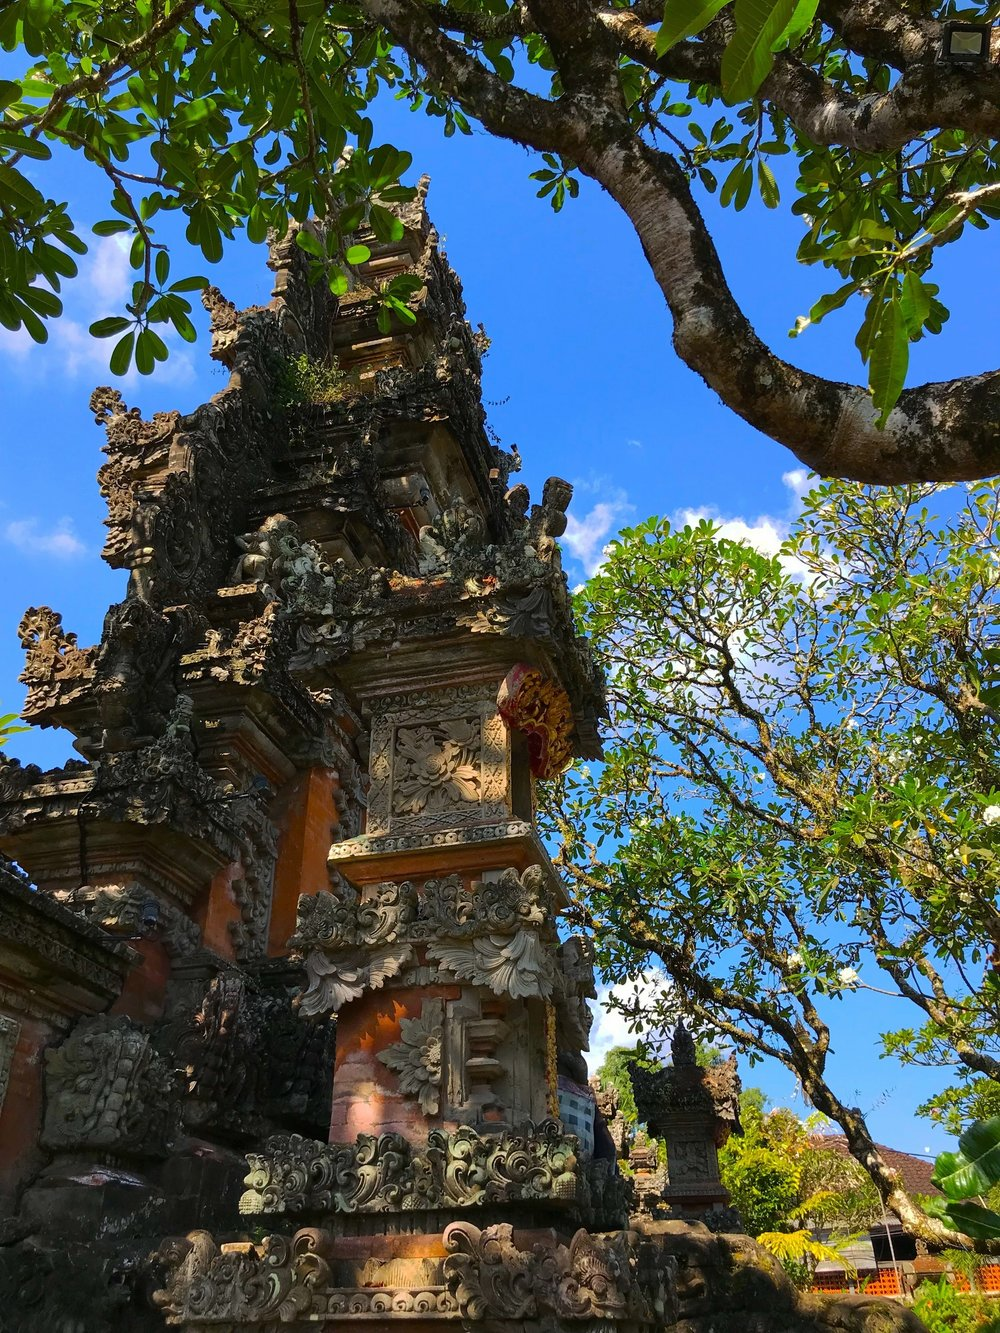 The Saraswati Temple in Ubud